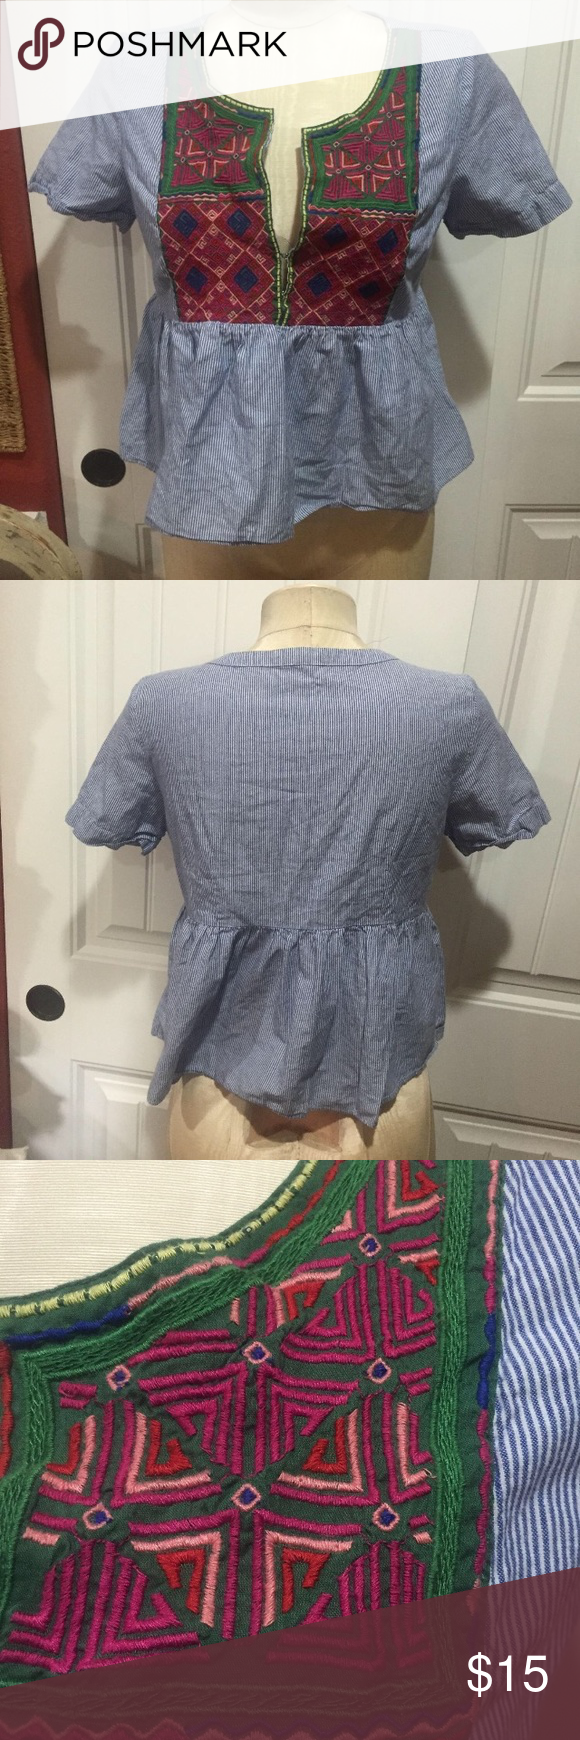 American Eagle cute top size M could fit small American Eagle cute top size M could fit small also American Eagle Outfitters Tops Blouses